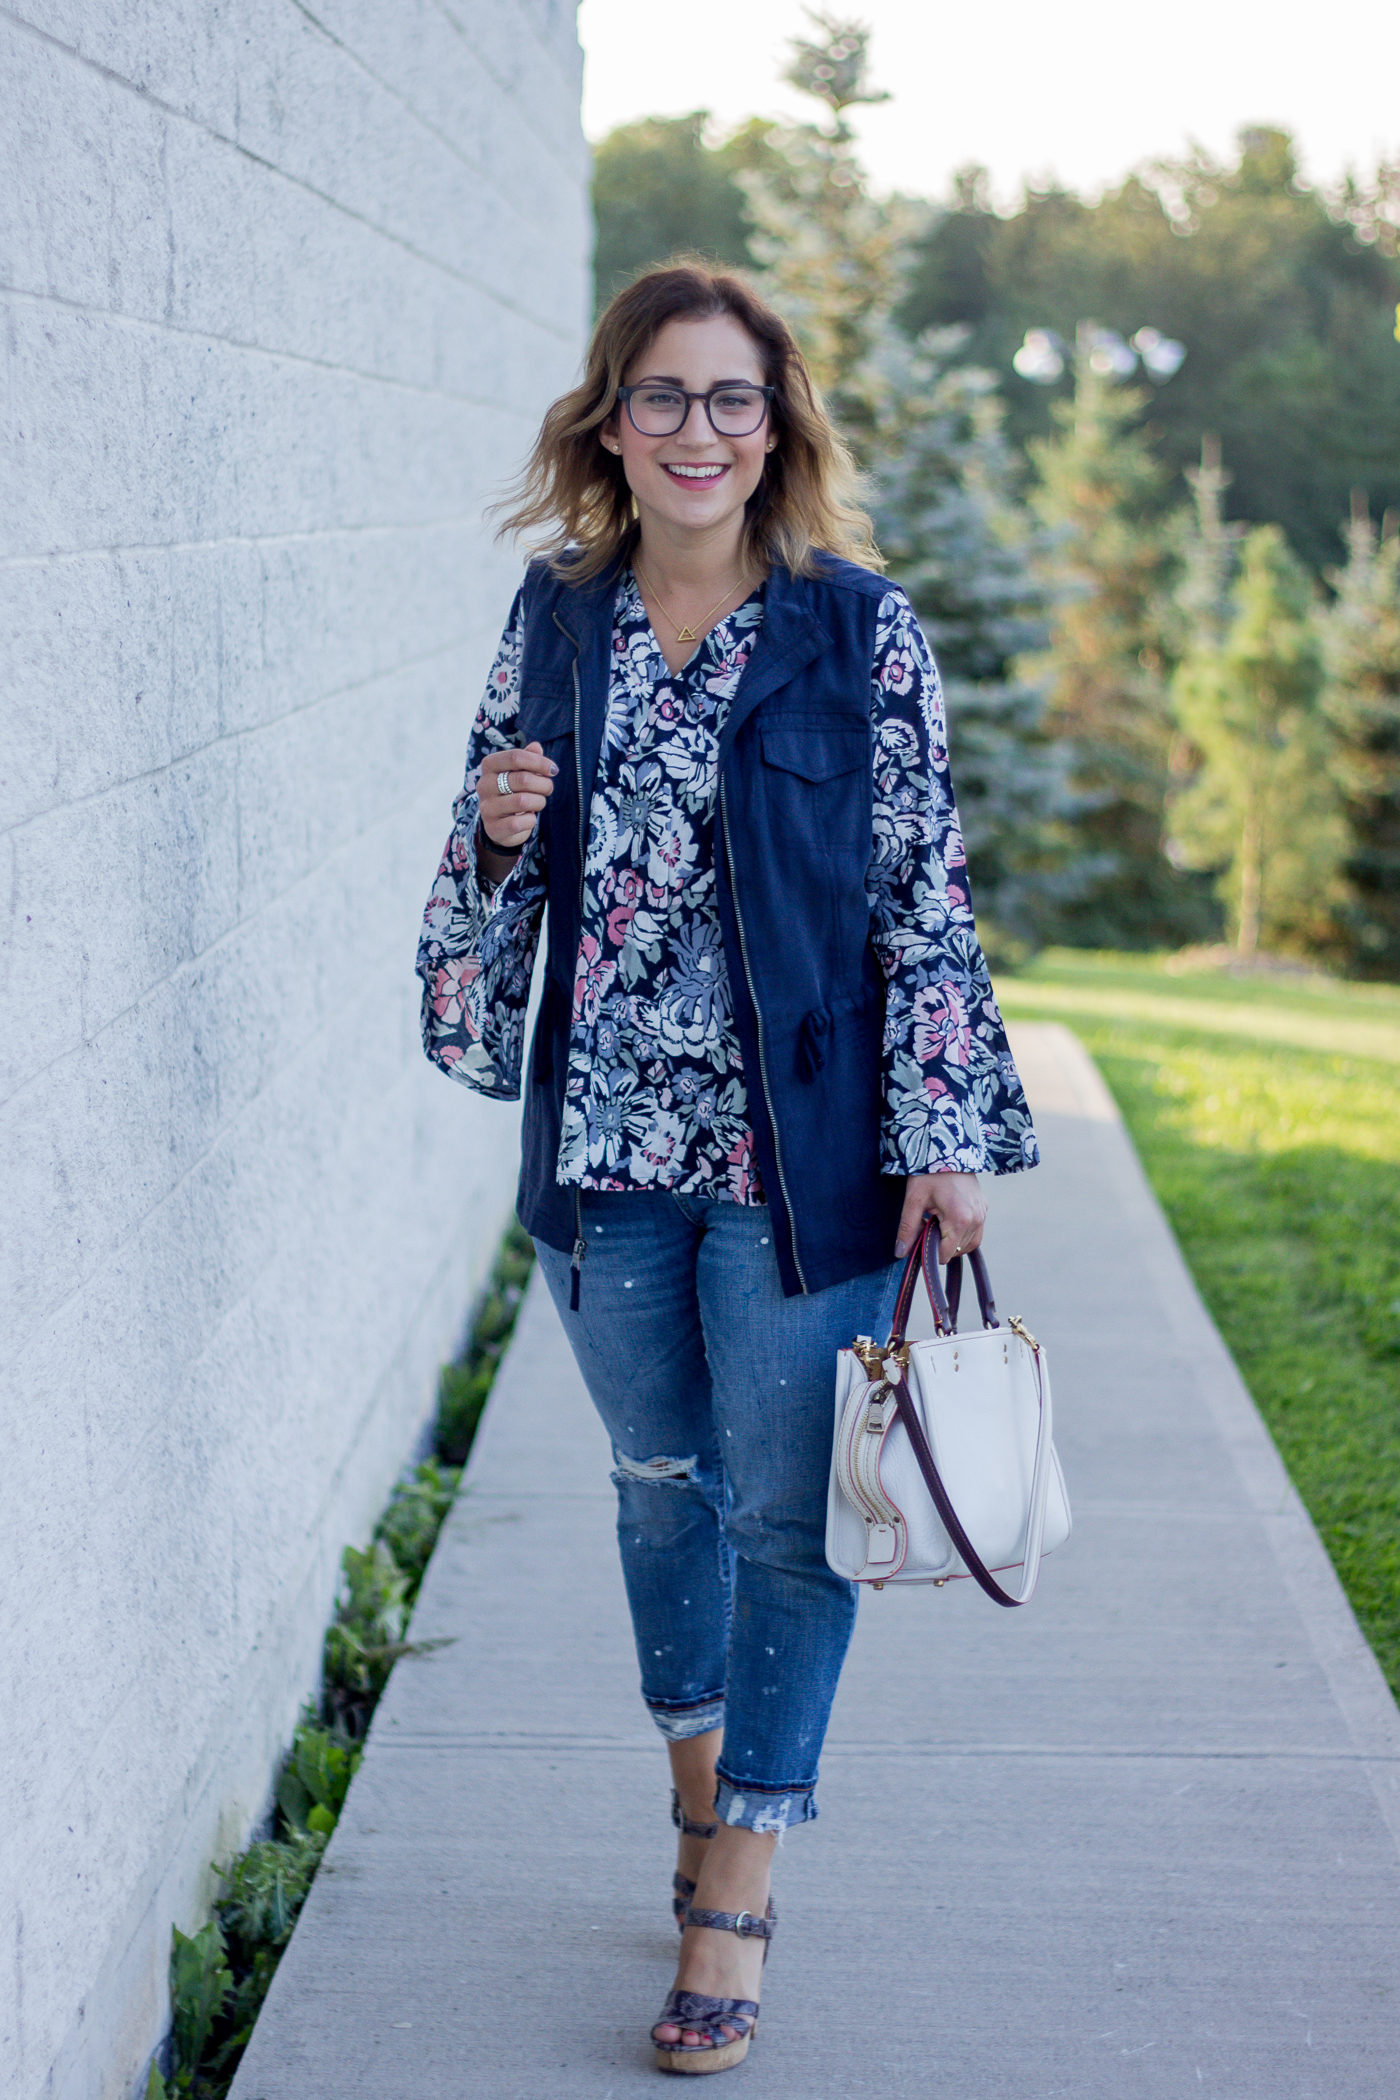 Dark floral top for fall with a navy cargo vest from Merona, with ripped girlfriend jeans from Gap